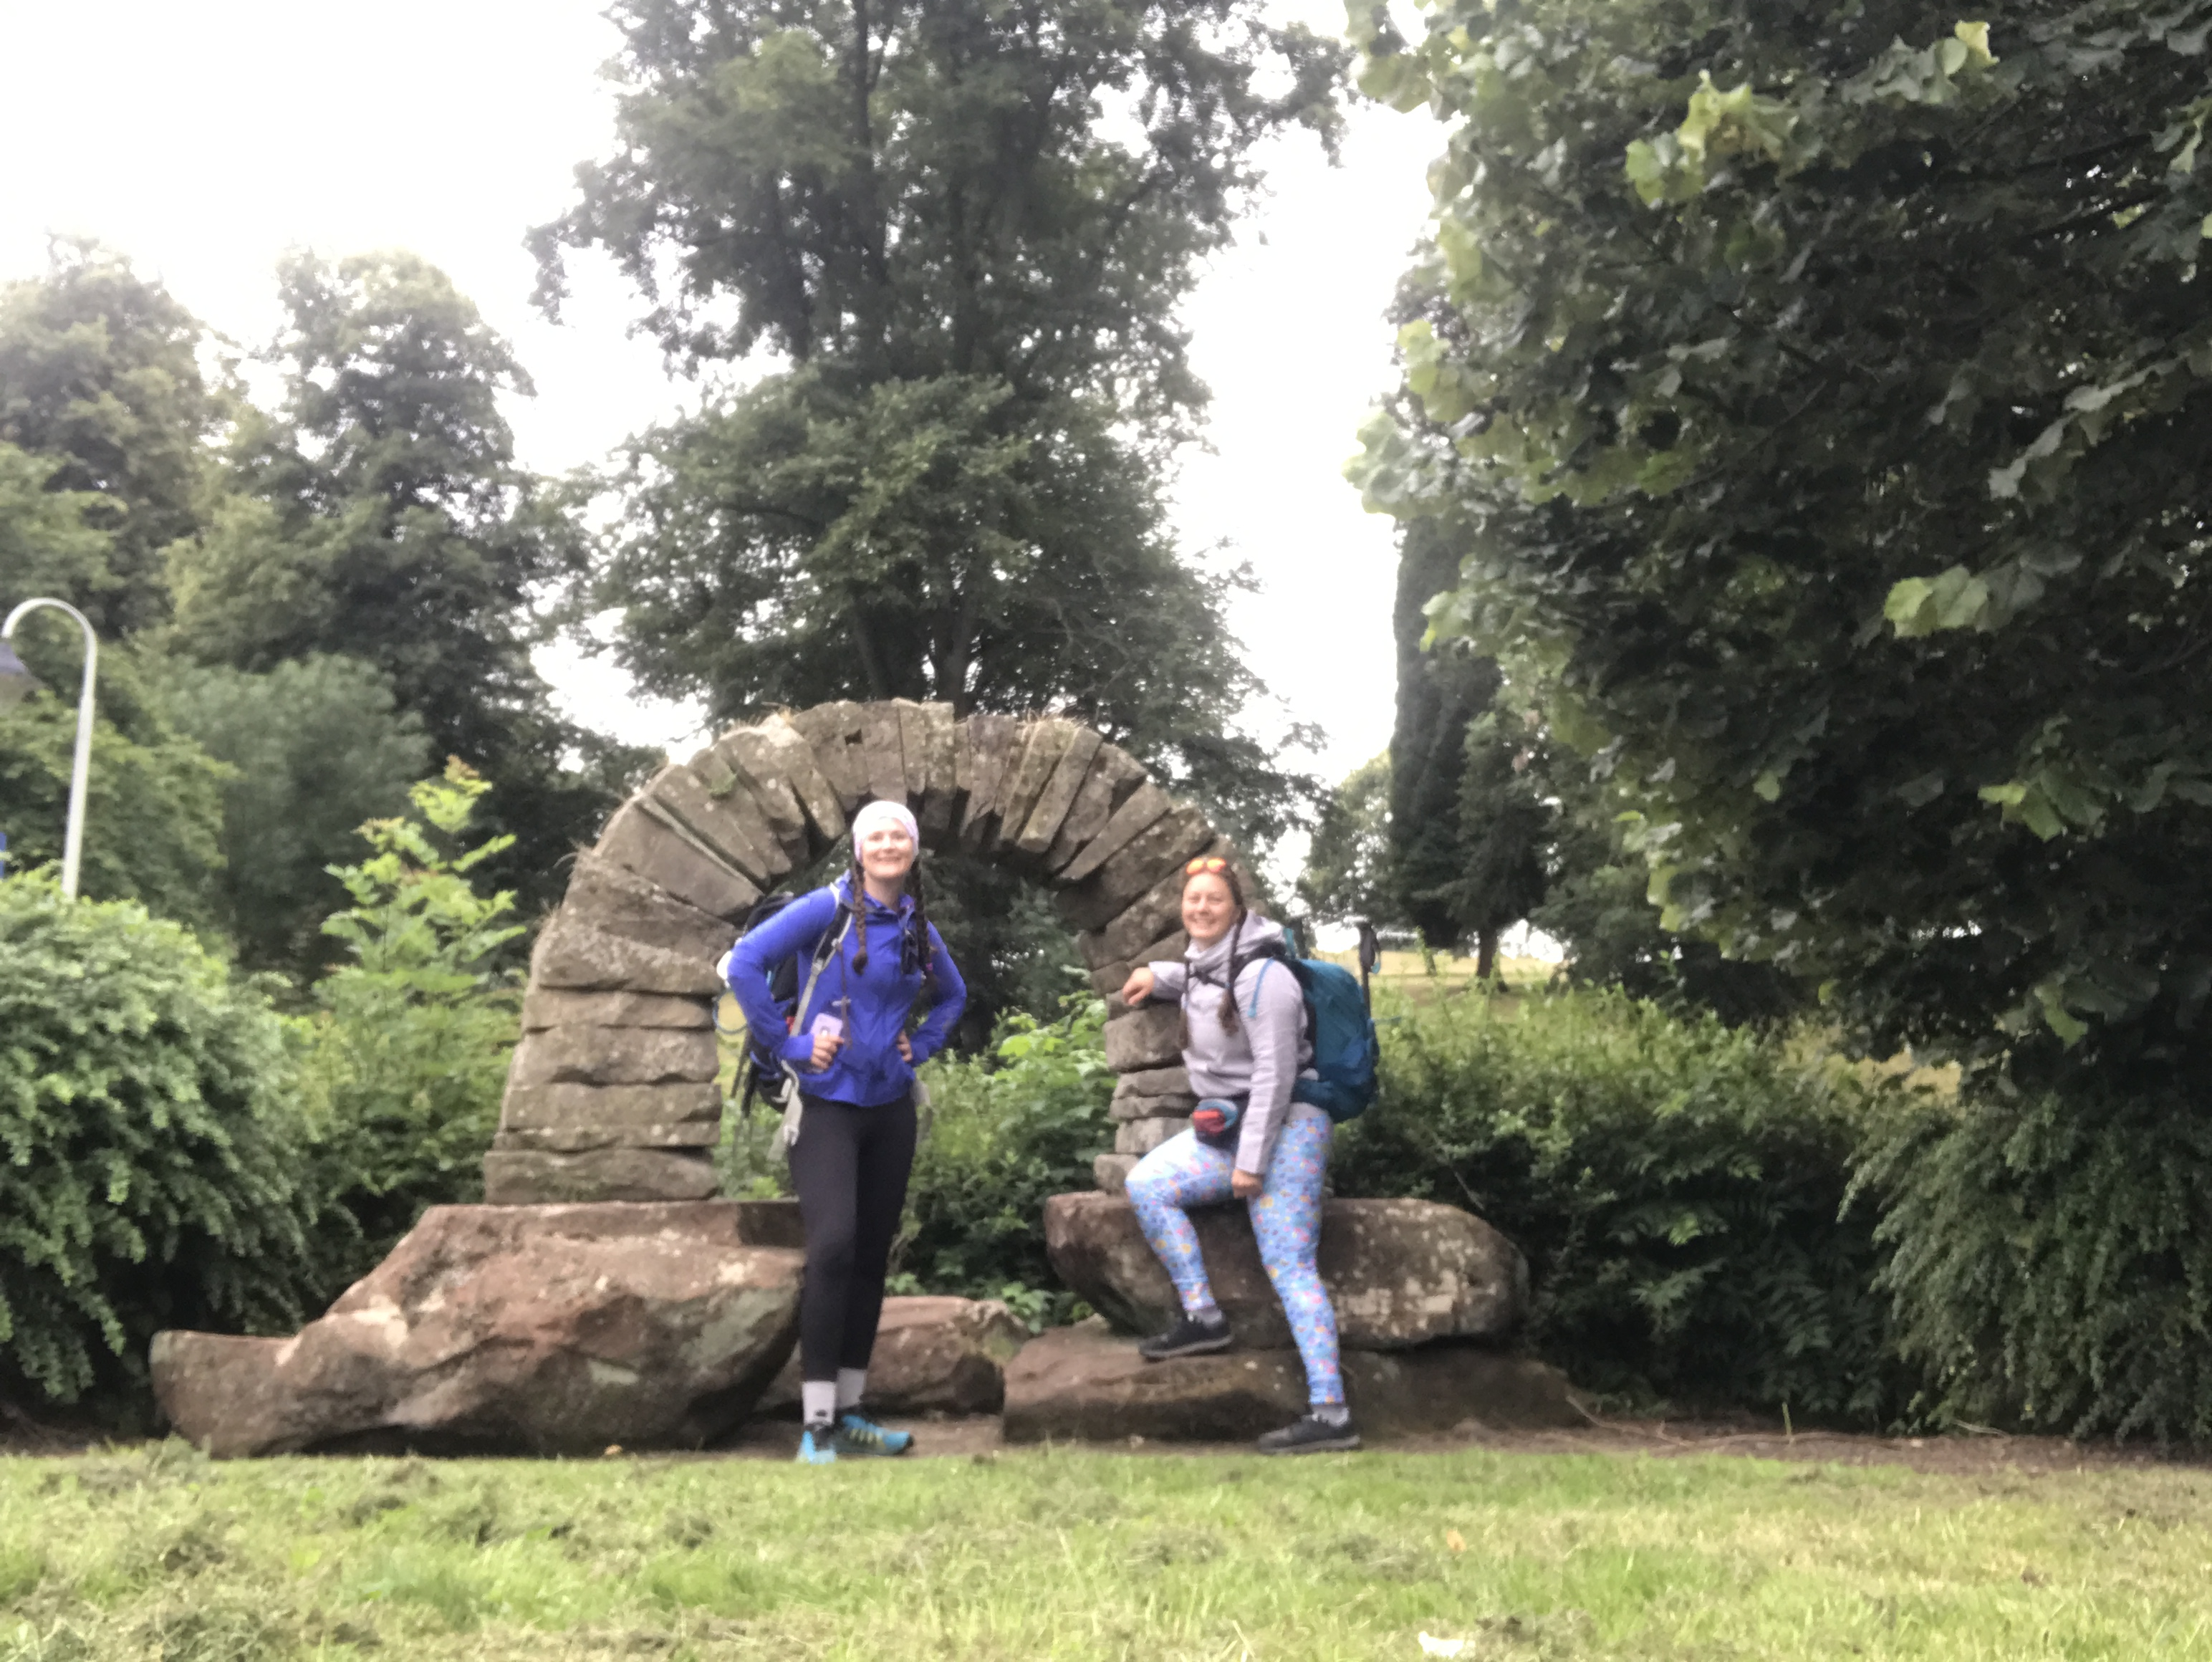 Sarah and Ellen stand in front of a standstone arch